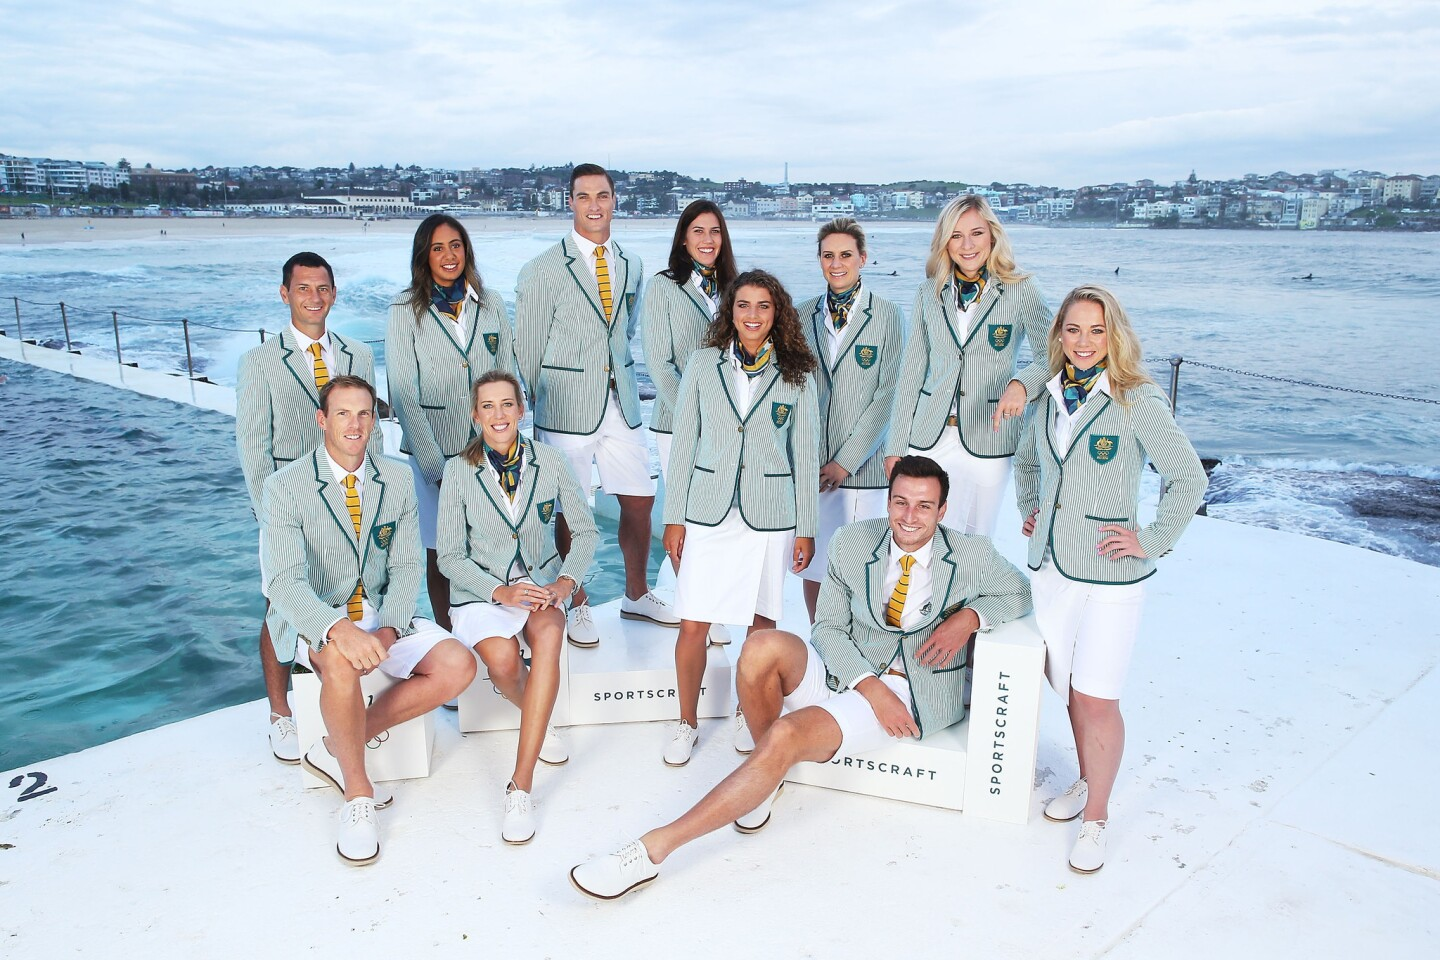 The look of Australia's Sportscraft-designed opening ceremony uniforms is inspired by the outfits worn by the Aussie team in the 1924 Paris Olympics.